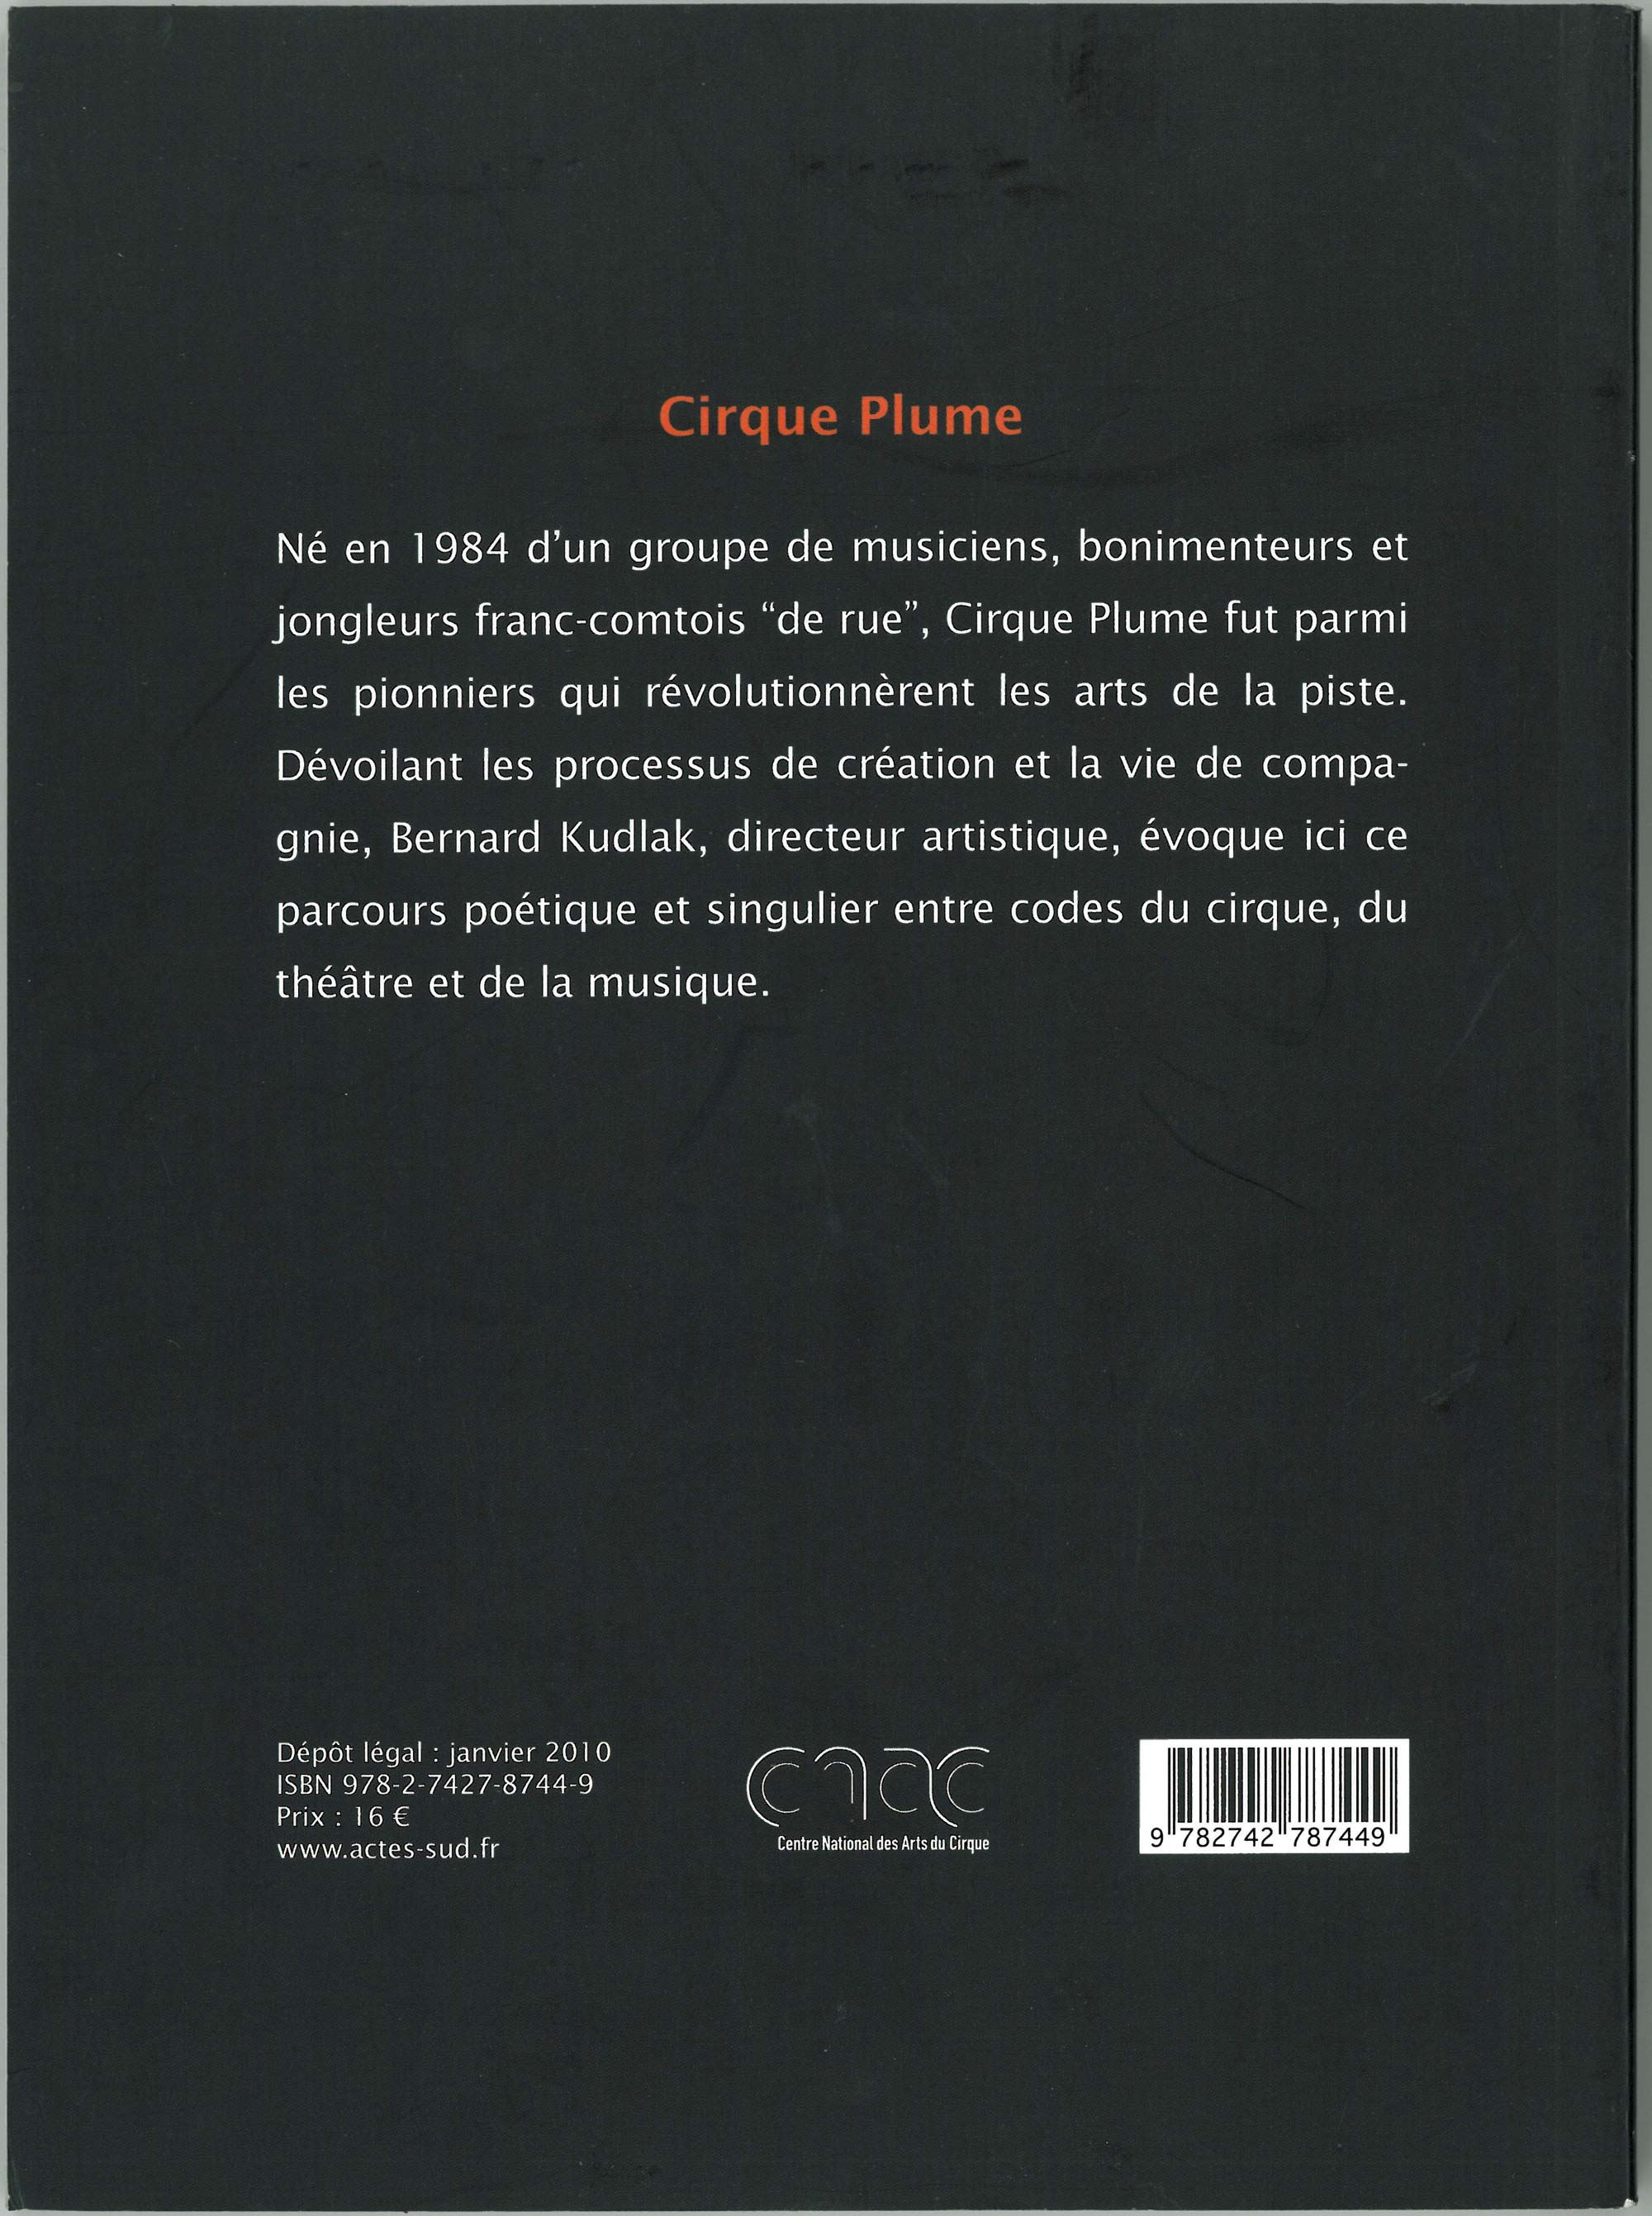 Back cover - Cirque Plume, Gwénola David